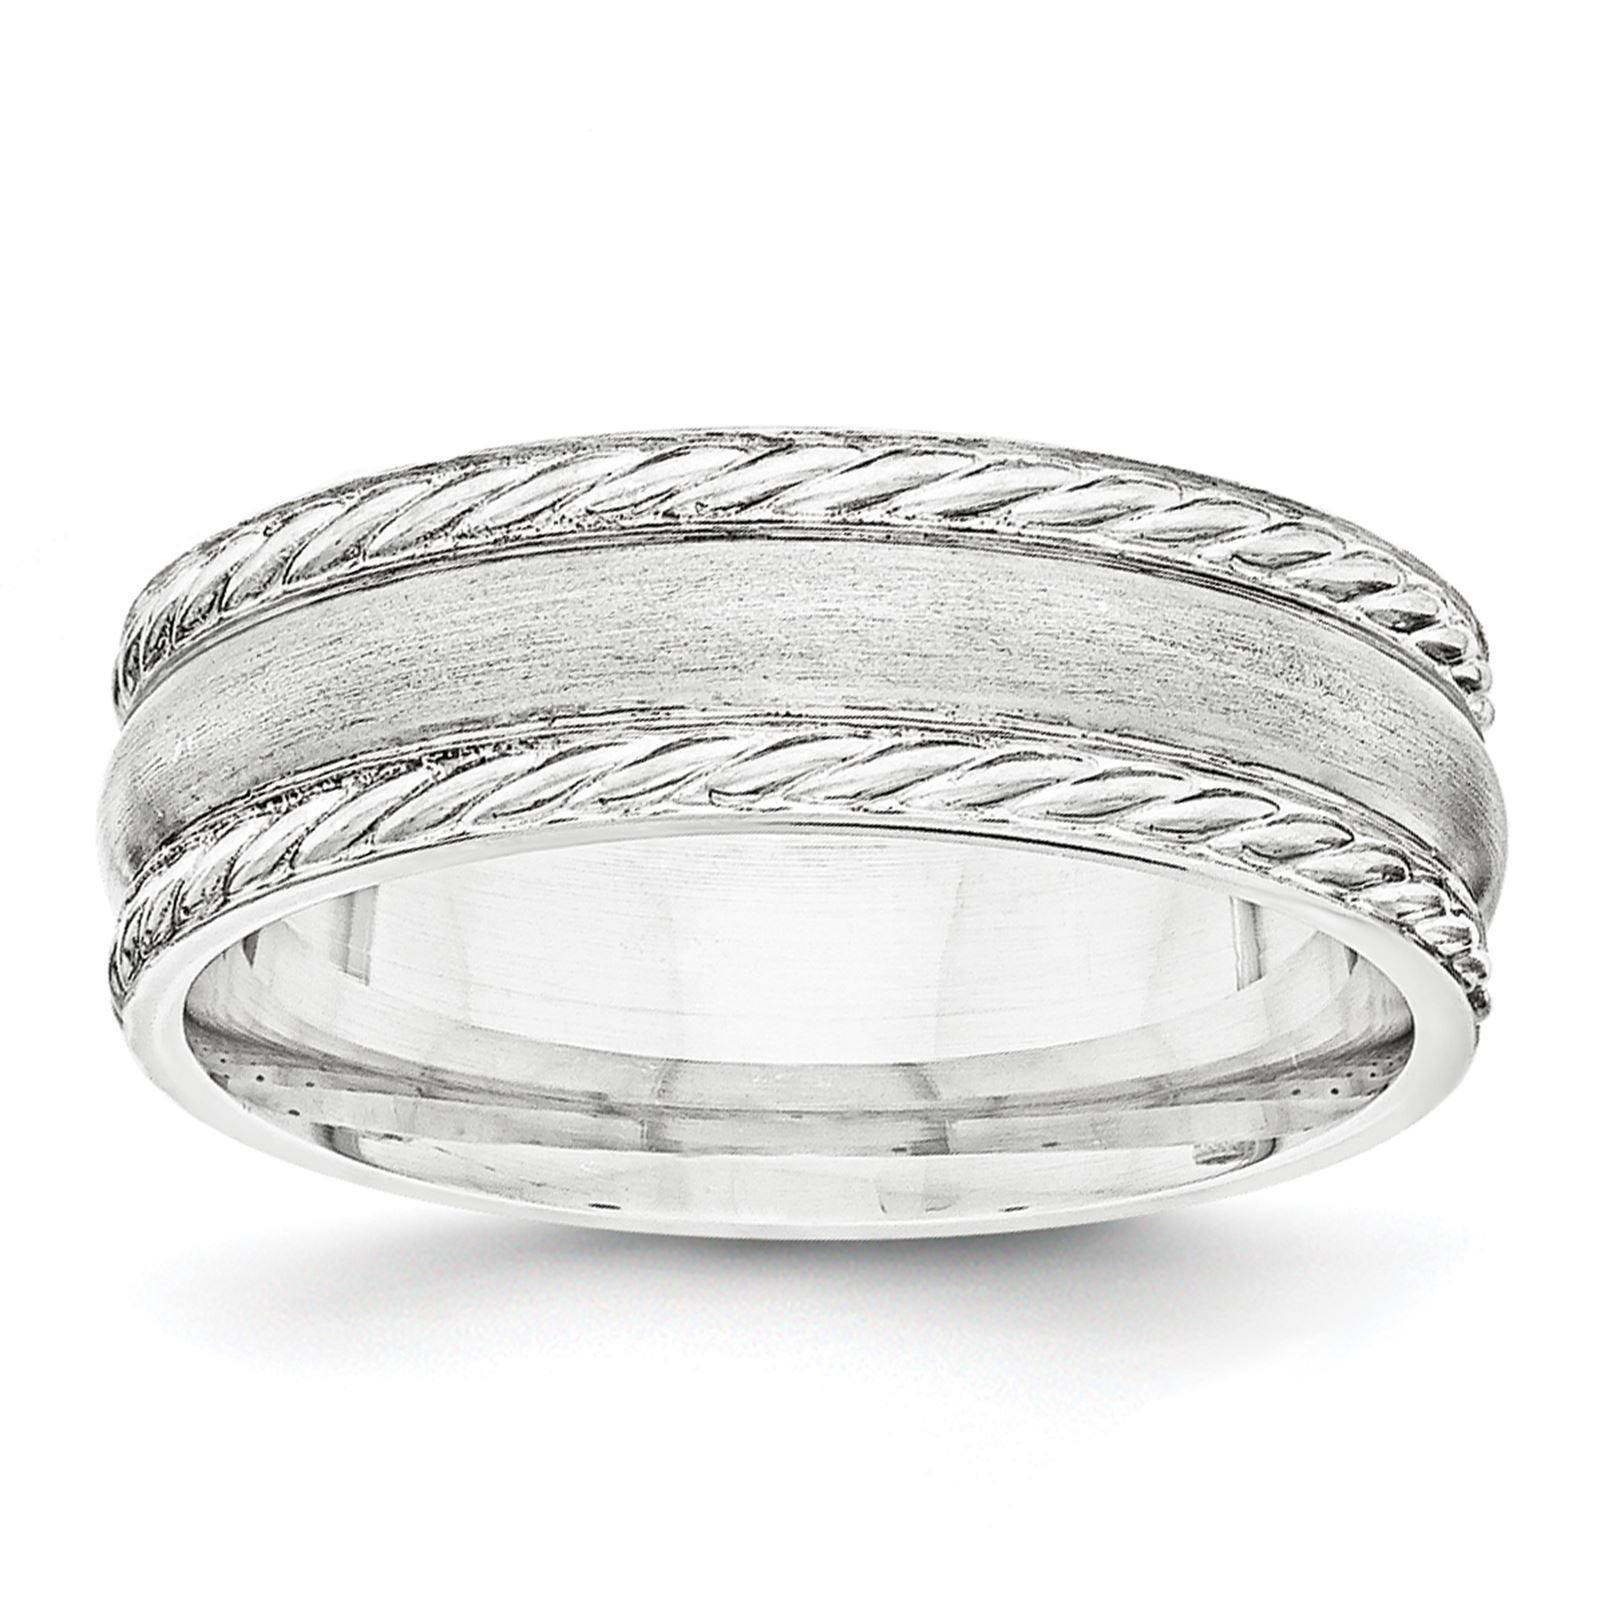 925 Sterling Silver 6mm Brushed Fancy Rope Wedding Band Ring Band Size 10.5